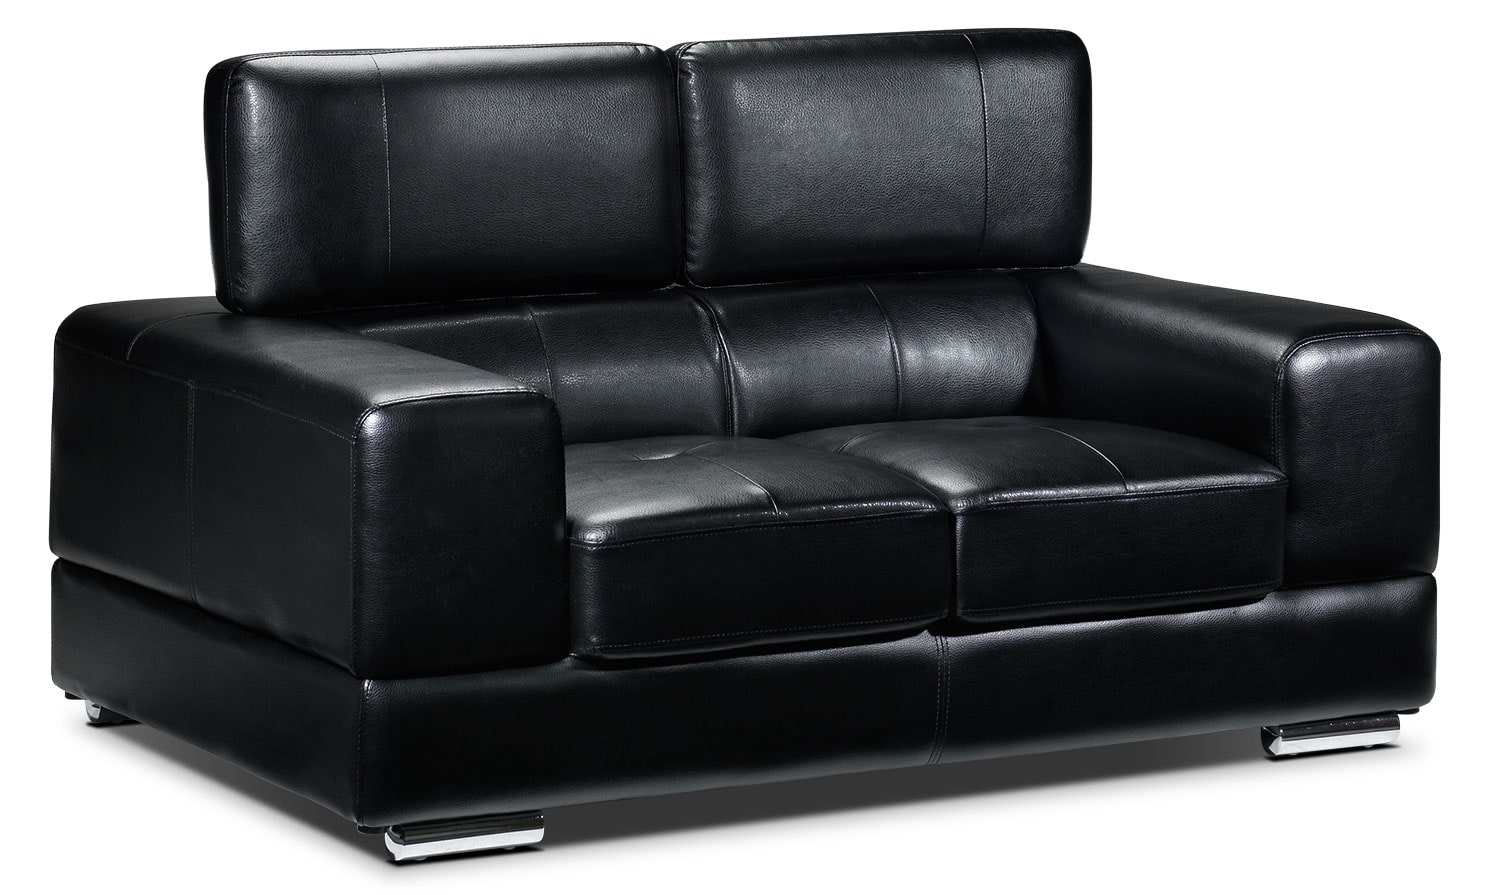 Living Room Furniture - Driscoll Loveseat